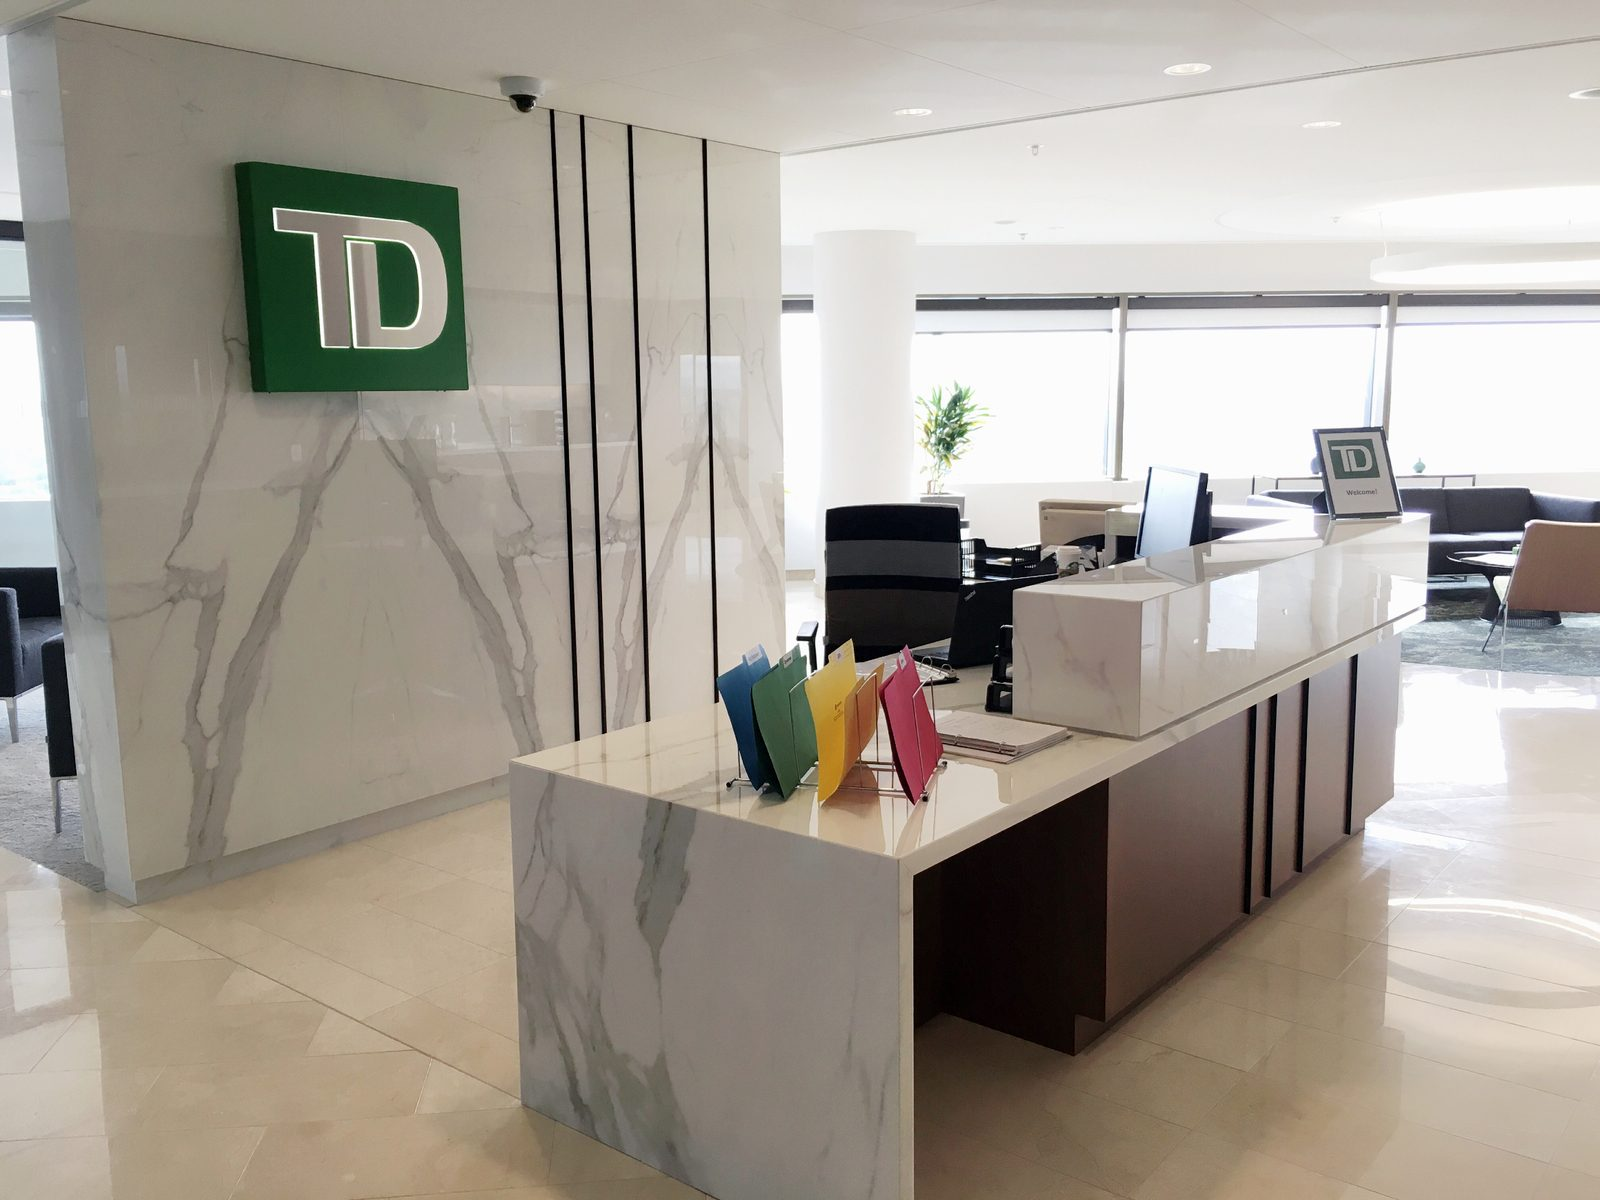 TD Wealth Private Investment Advice - Winnipeg, MB R3C 3Z3 - (204)988-2748 | ShowMeLocal.com